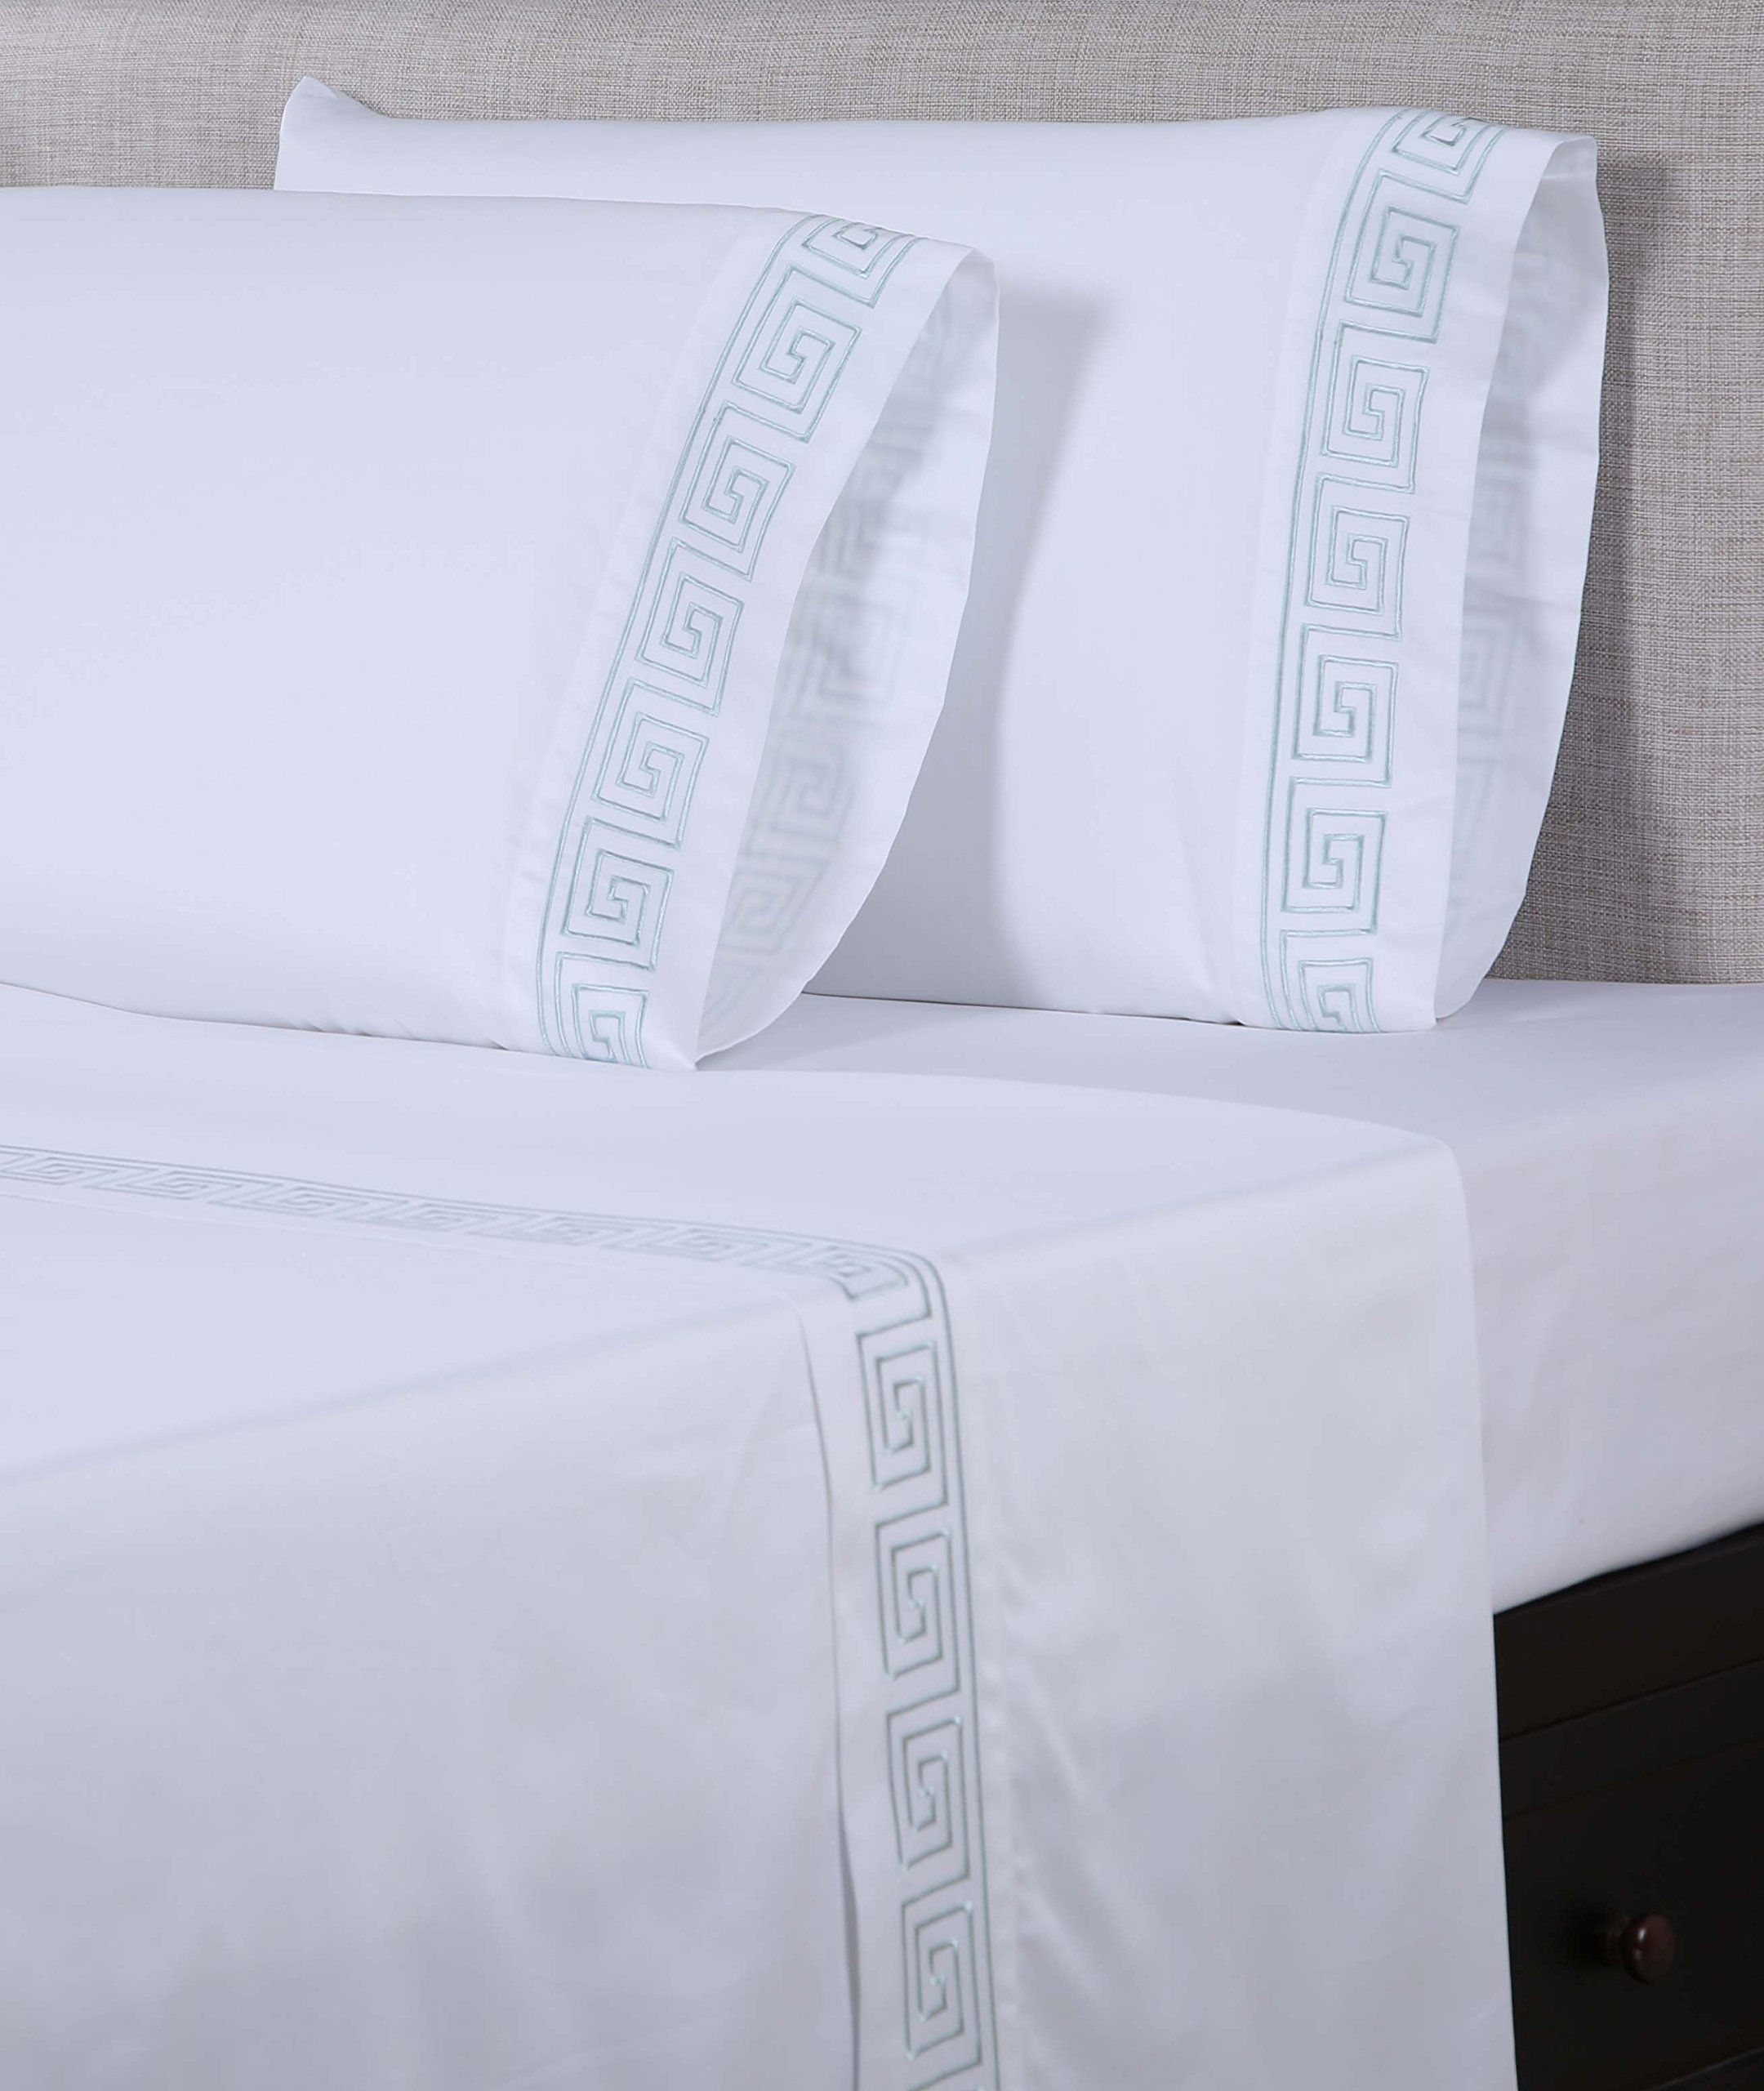 Affluence 600 Thread Count 100% Cotton Embroidered Sheet Sets - Greek Key Pattern (King Sheet Set, White/Spa Blue)